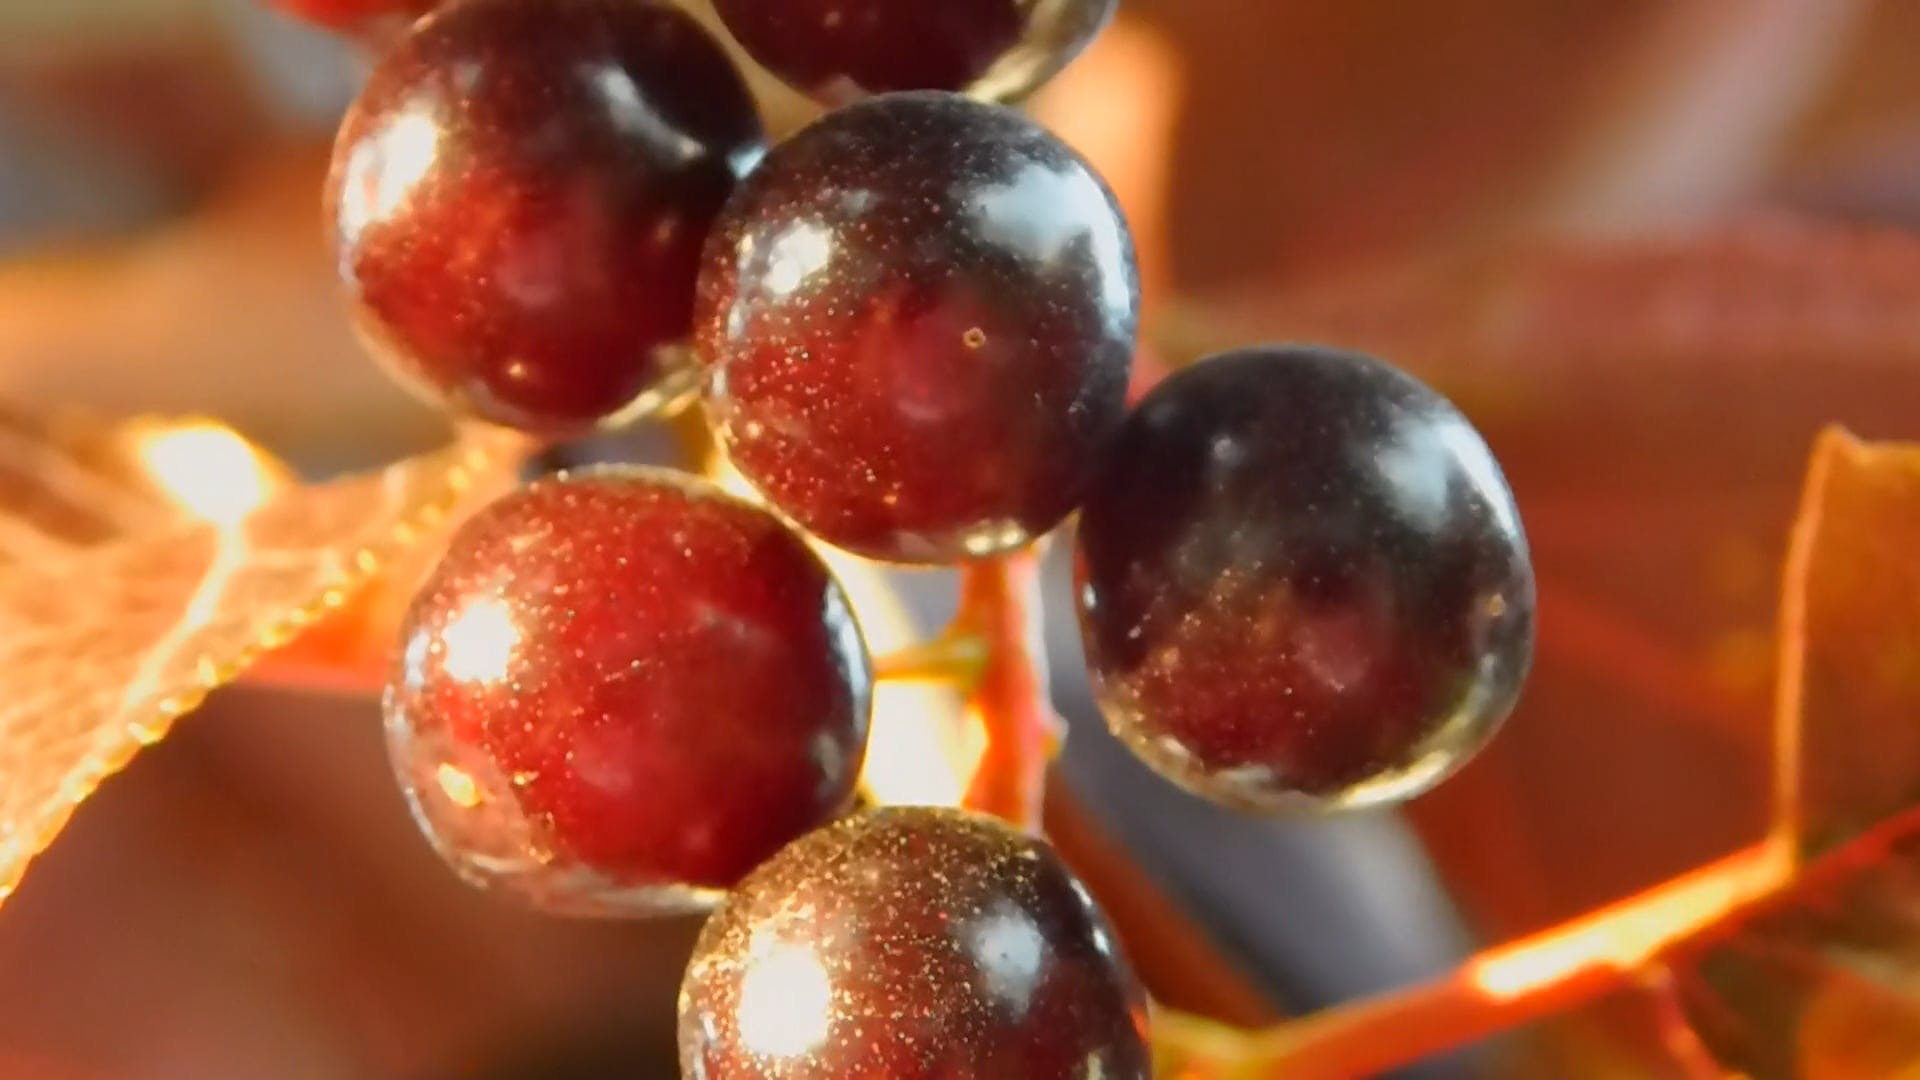 Close-up Photo of Berries